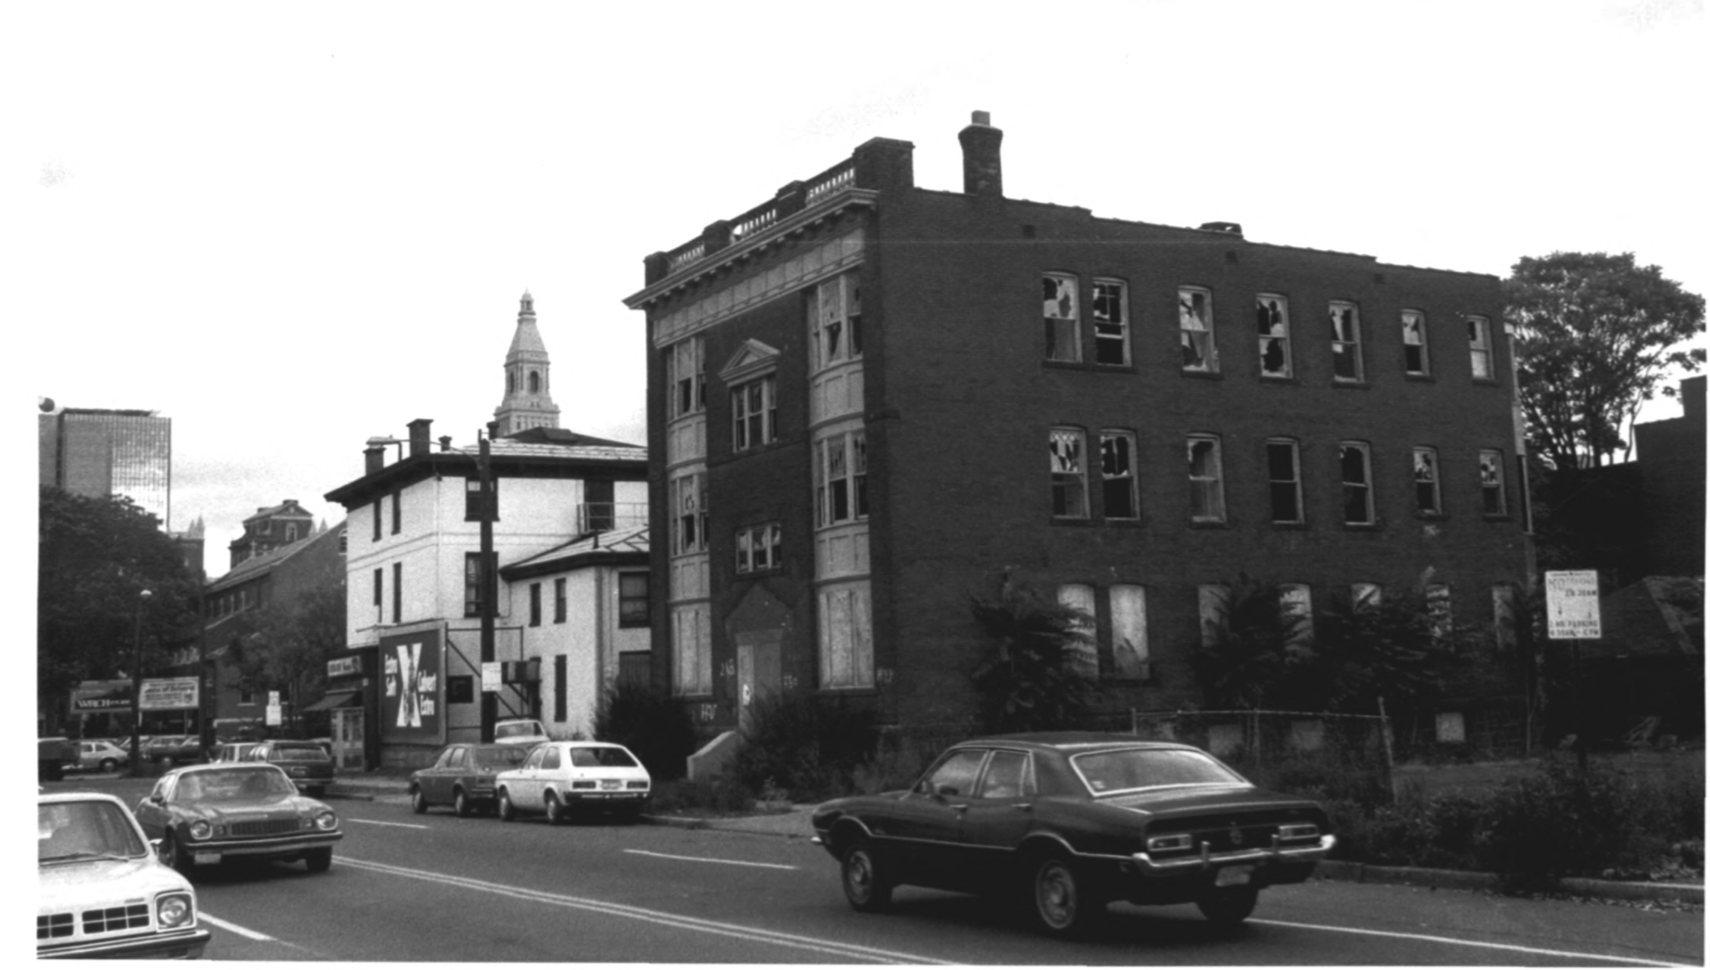 Photo of the Stoneleigh Building, Buckingham Square, from the NRHP Archive Photographs by D. Ransom 10/81